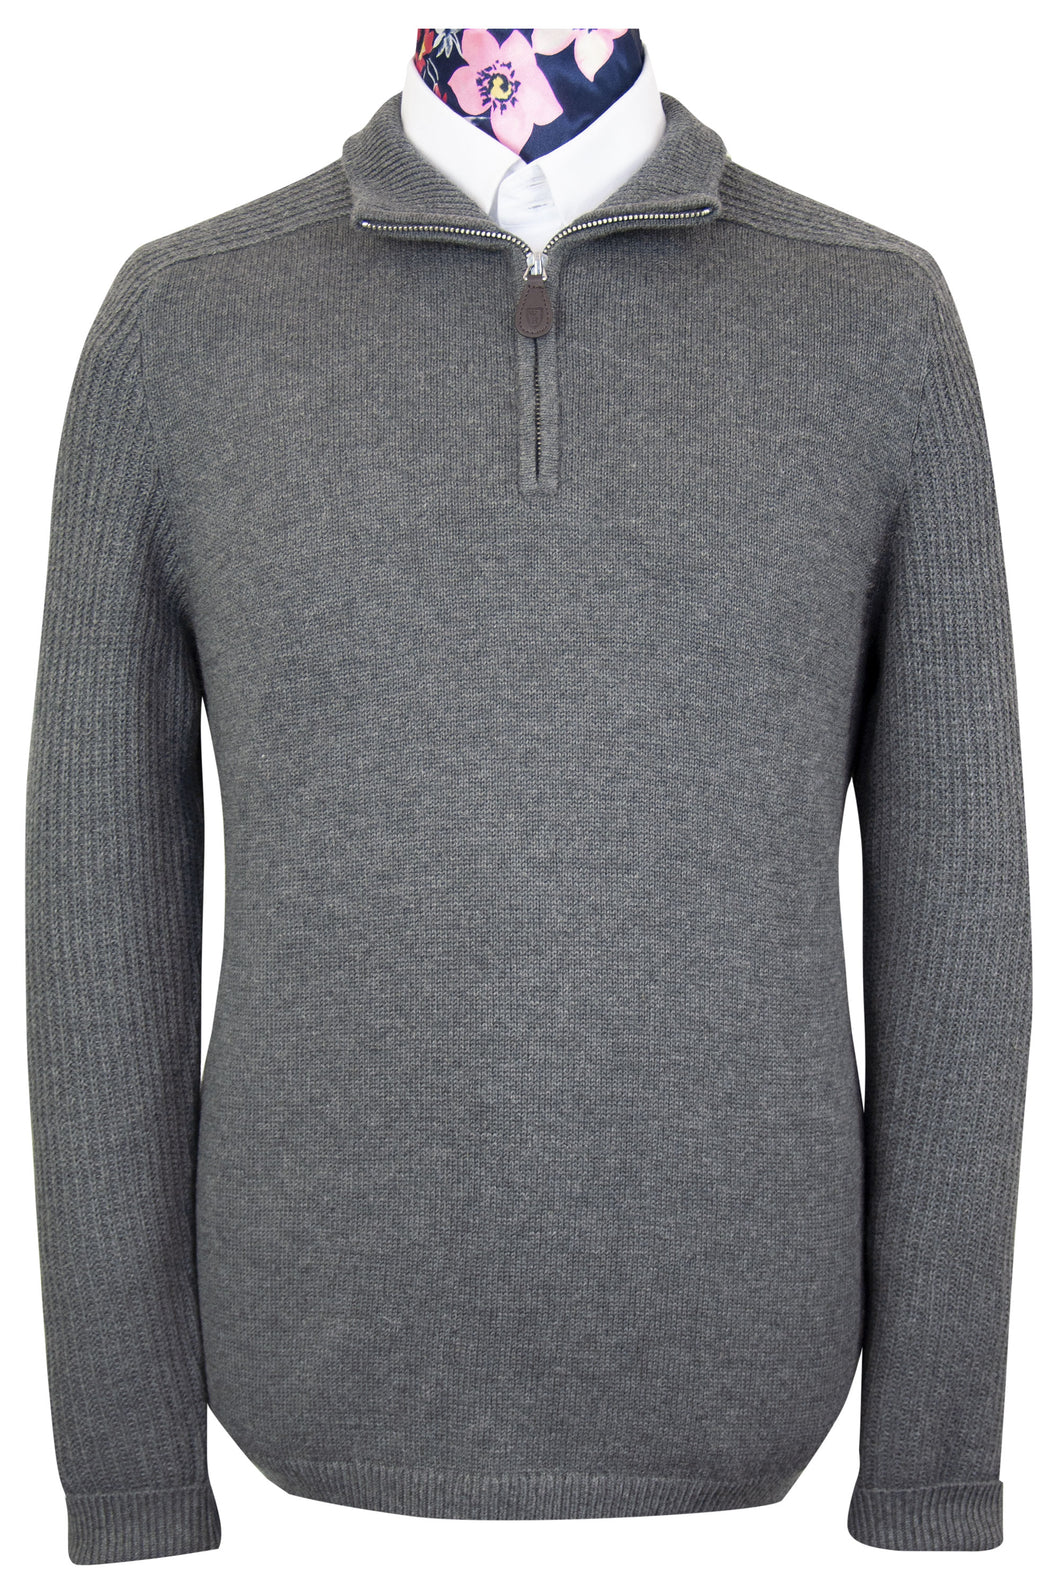 Grey Half Logo Zip WH Knitted Jumper Front View